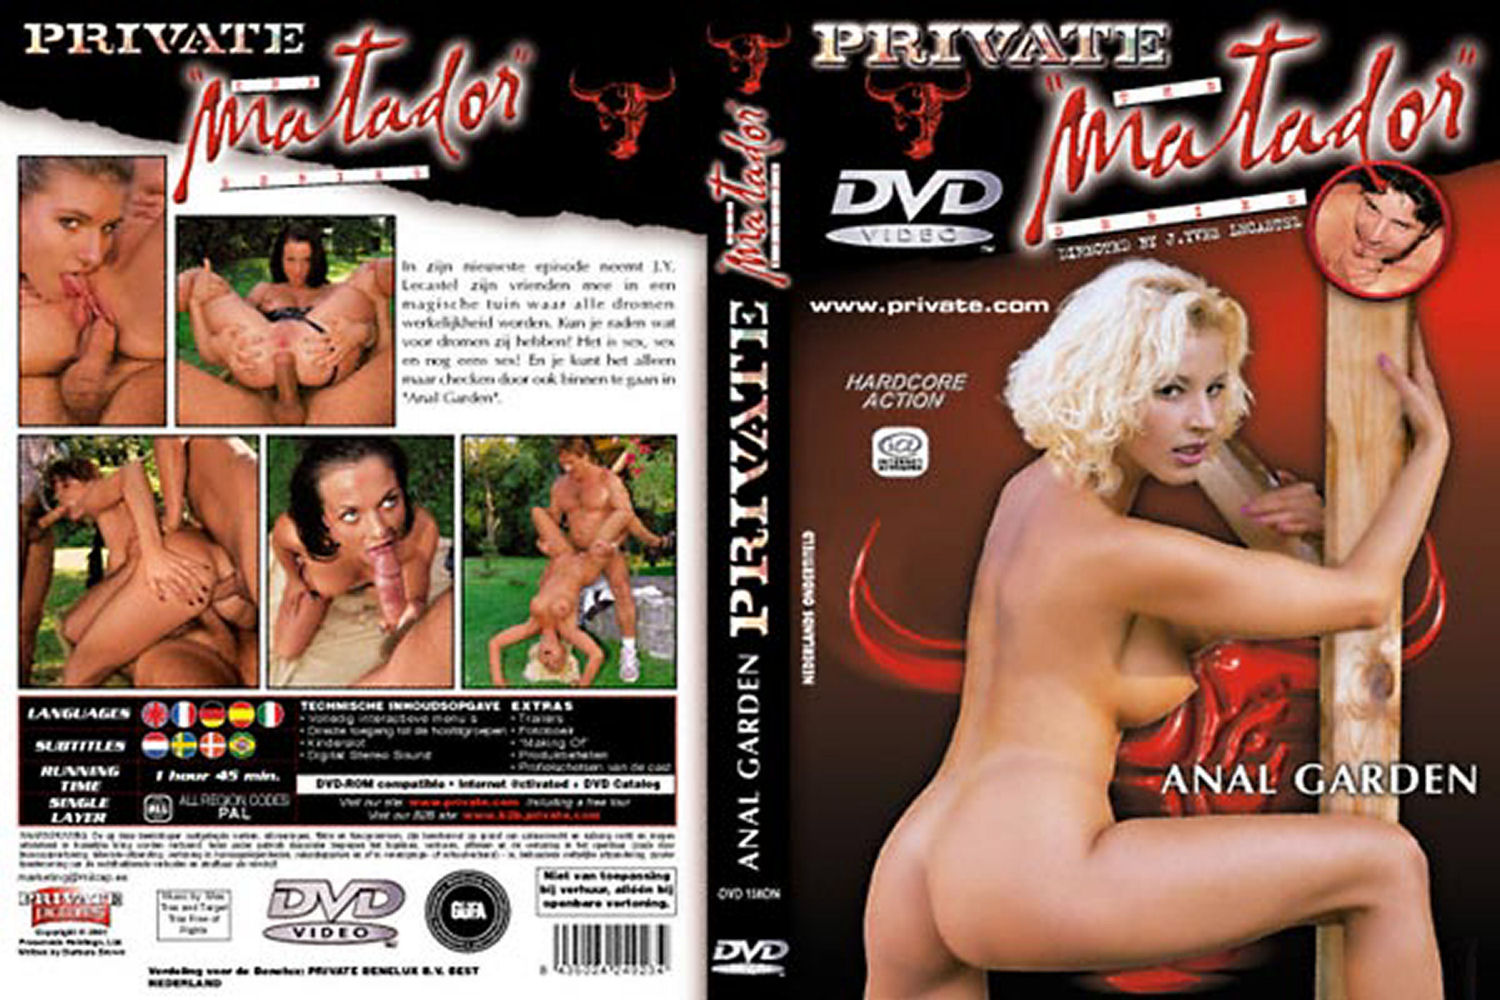 Enjoy porn dvd imagespics with one